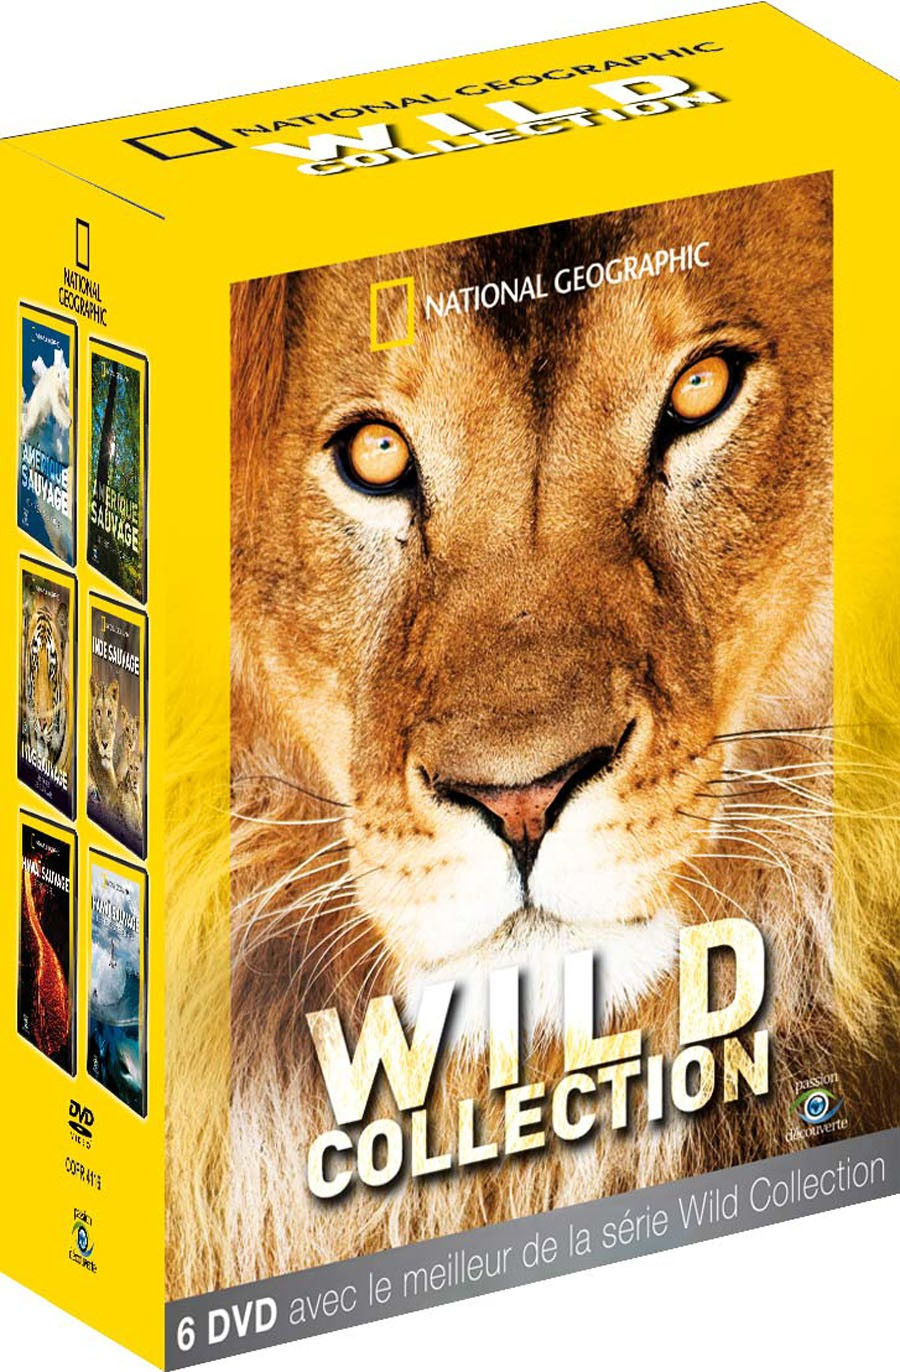 NATIONAL GEOGRAPHIC - WILD COLLECTION 6 DVD